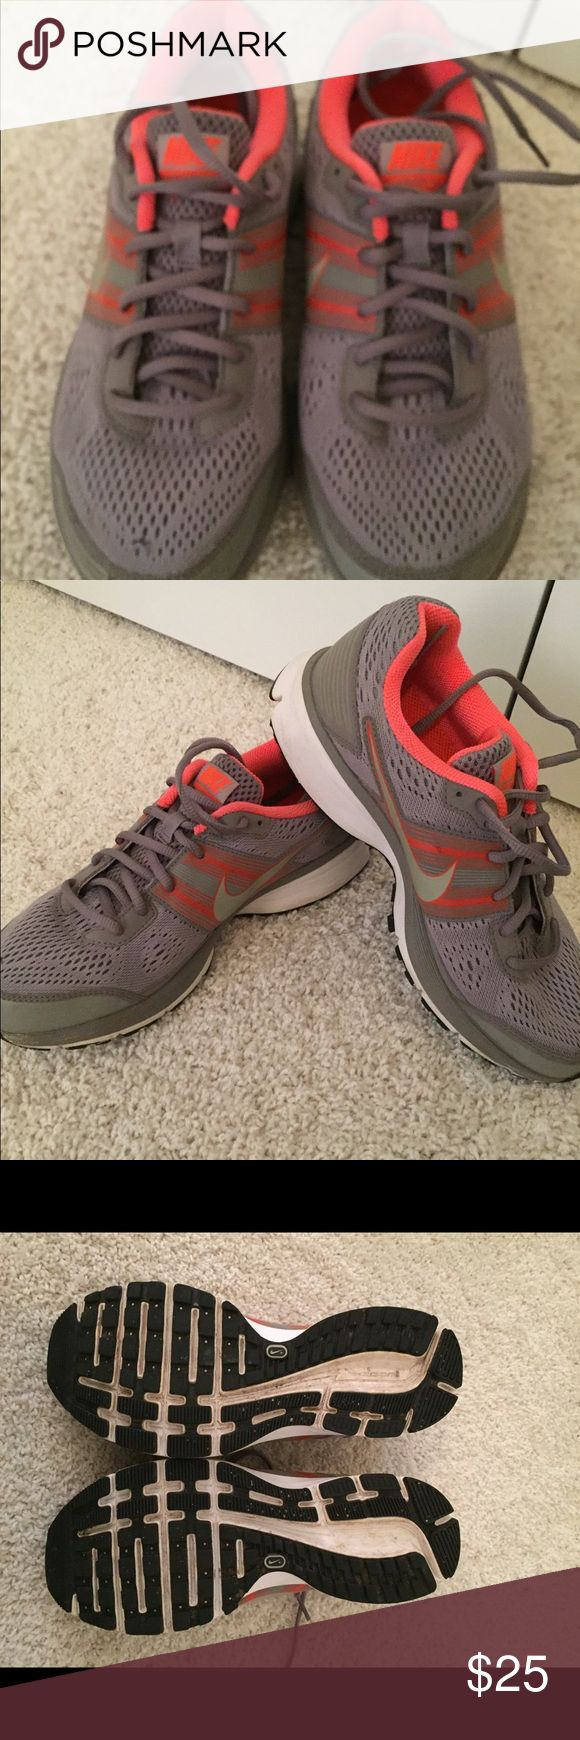 Nike Sneakers 👟 in Grey & Orange!!! Only worn a few times these Nike sneakers are looking for a new home!!  I'm an avid runner but due to an injury had to stop so these have only been worn maybe five times if that. They are a size US 8.5 - they are grey and orange and are beyond comfy to walk, run or both!!  Flexible on price and open to offers!! Nike Shoes Sneakers